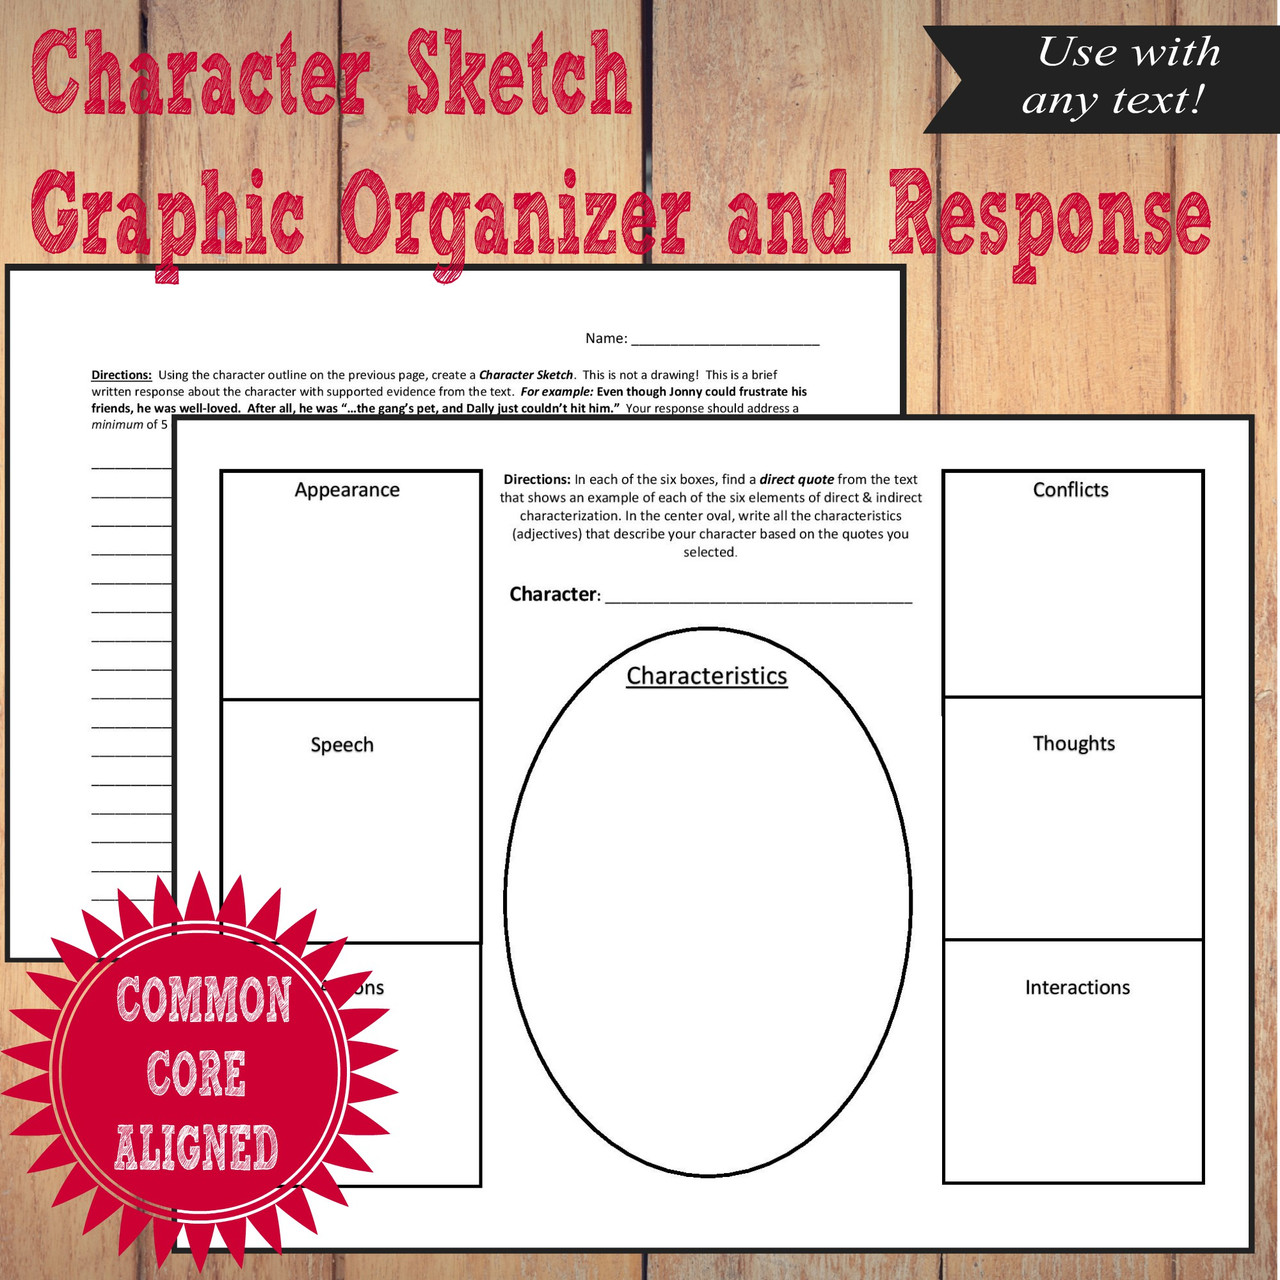 Character Sketch Graphic Organizer and Response